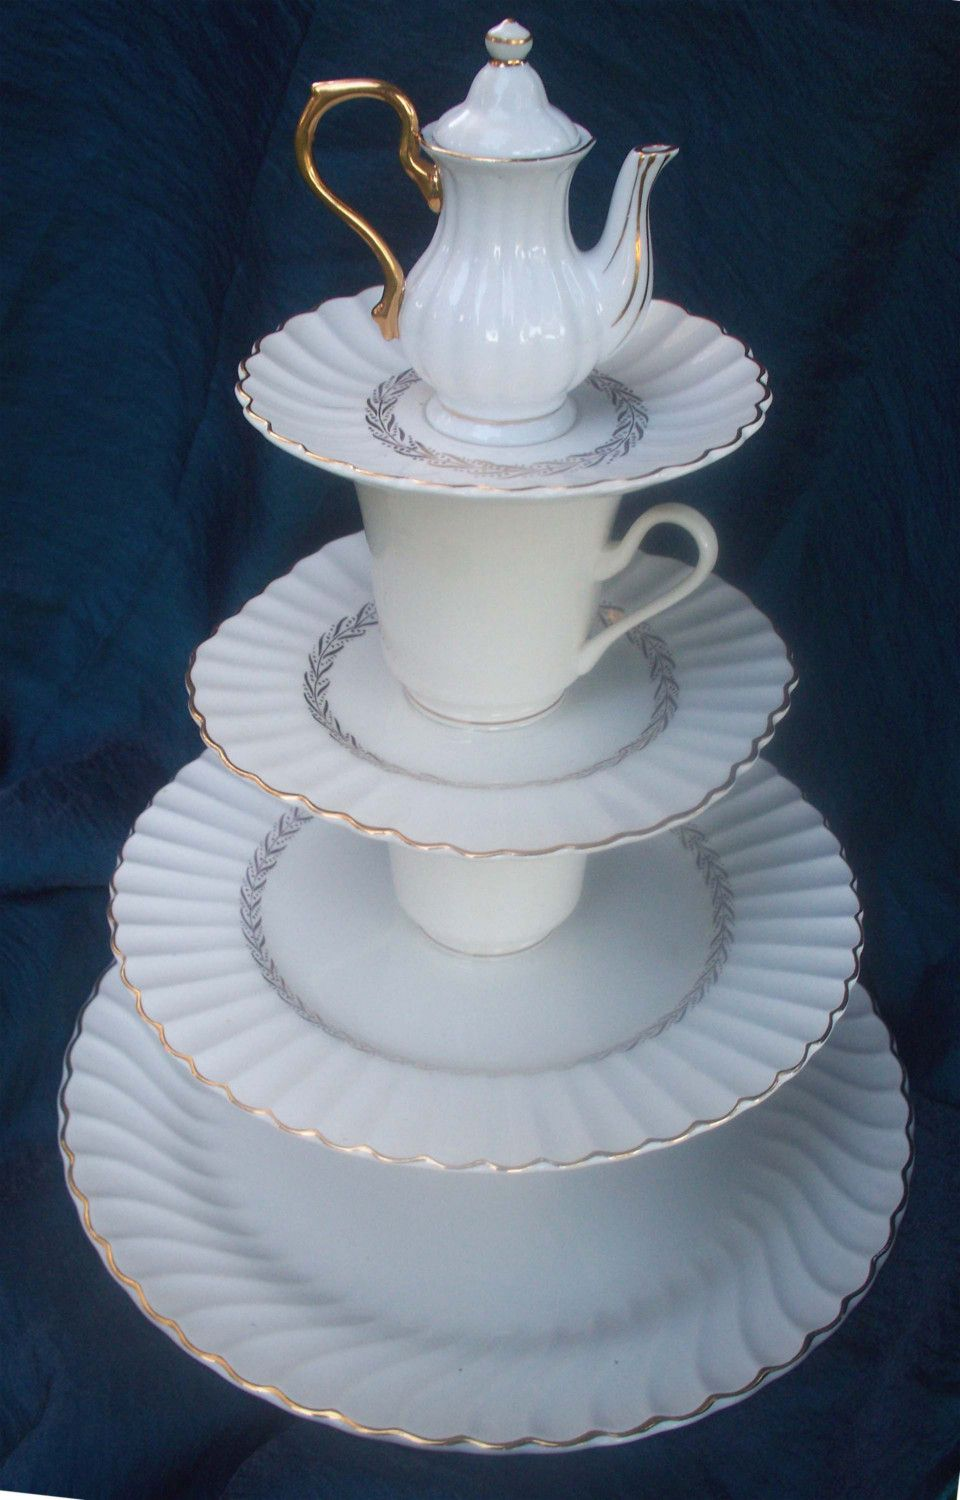 Totally Tea Time 4 Tier Tea Party Serving Tray From Vintage China One Of A Kind Etsy Diy Party Serving Trays Tiered Serving Trays Tea Party